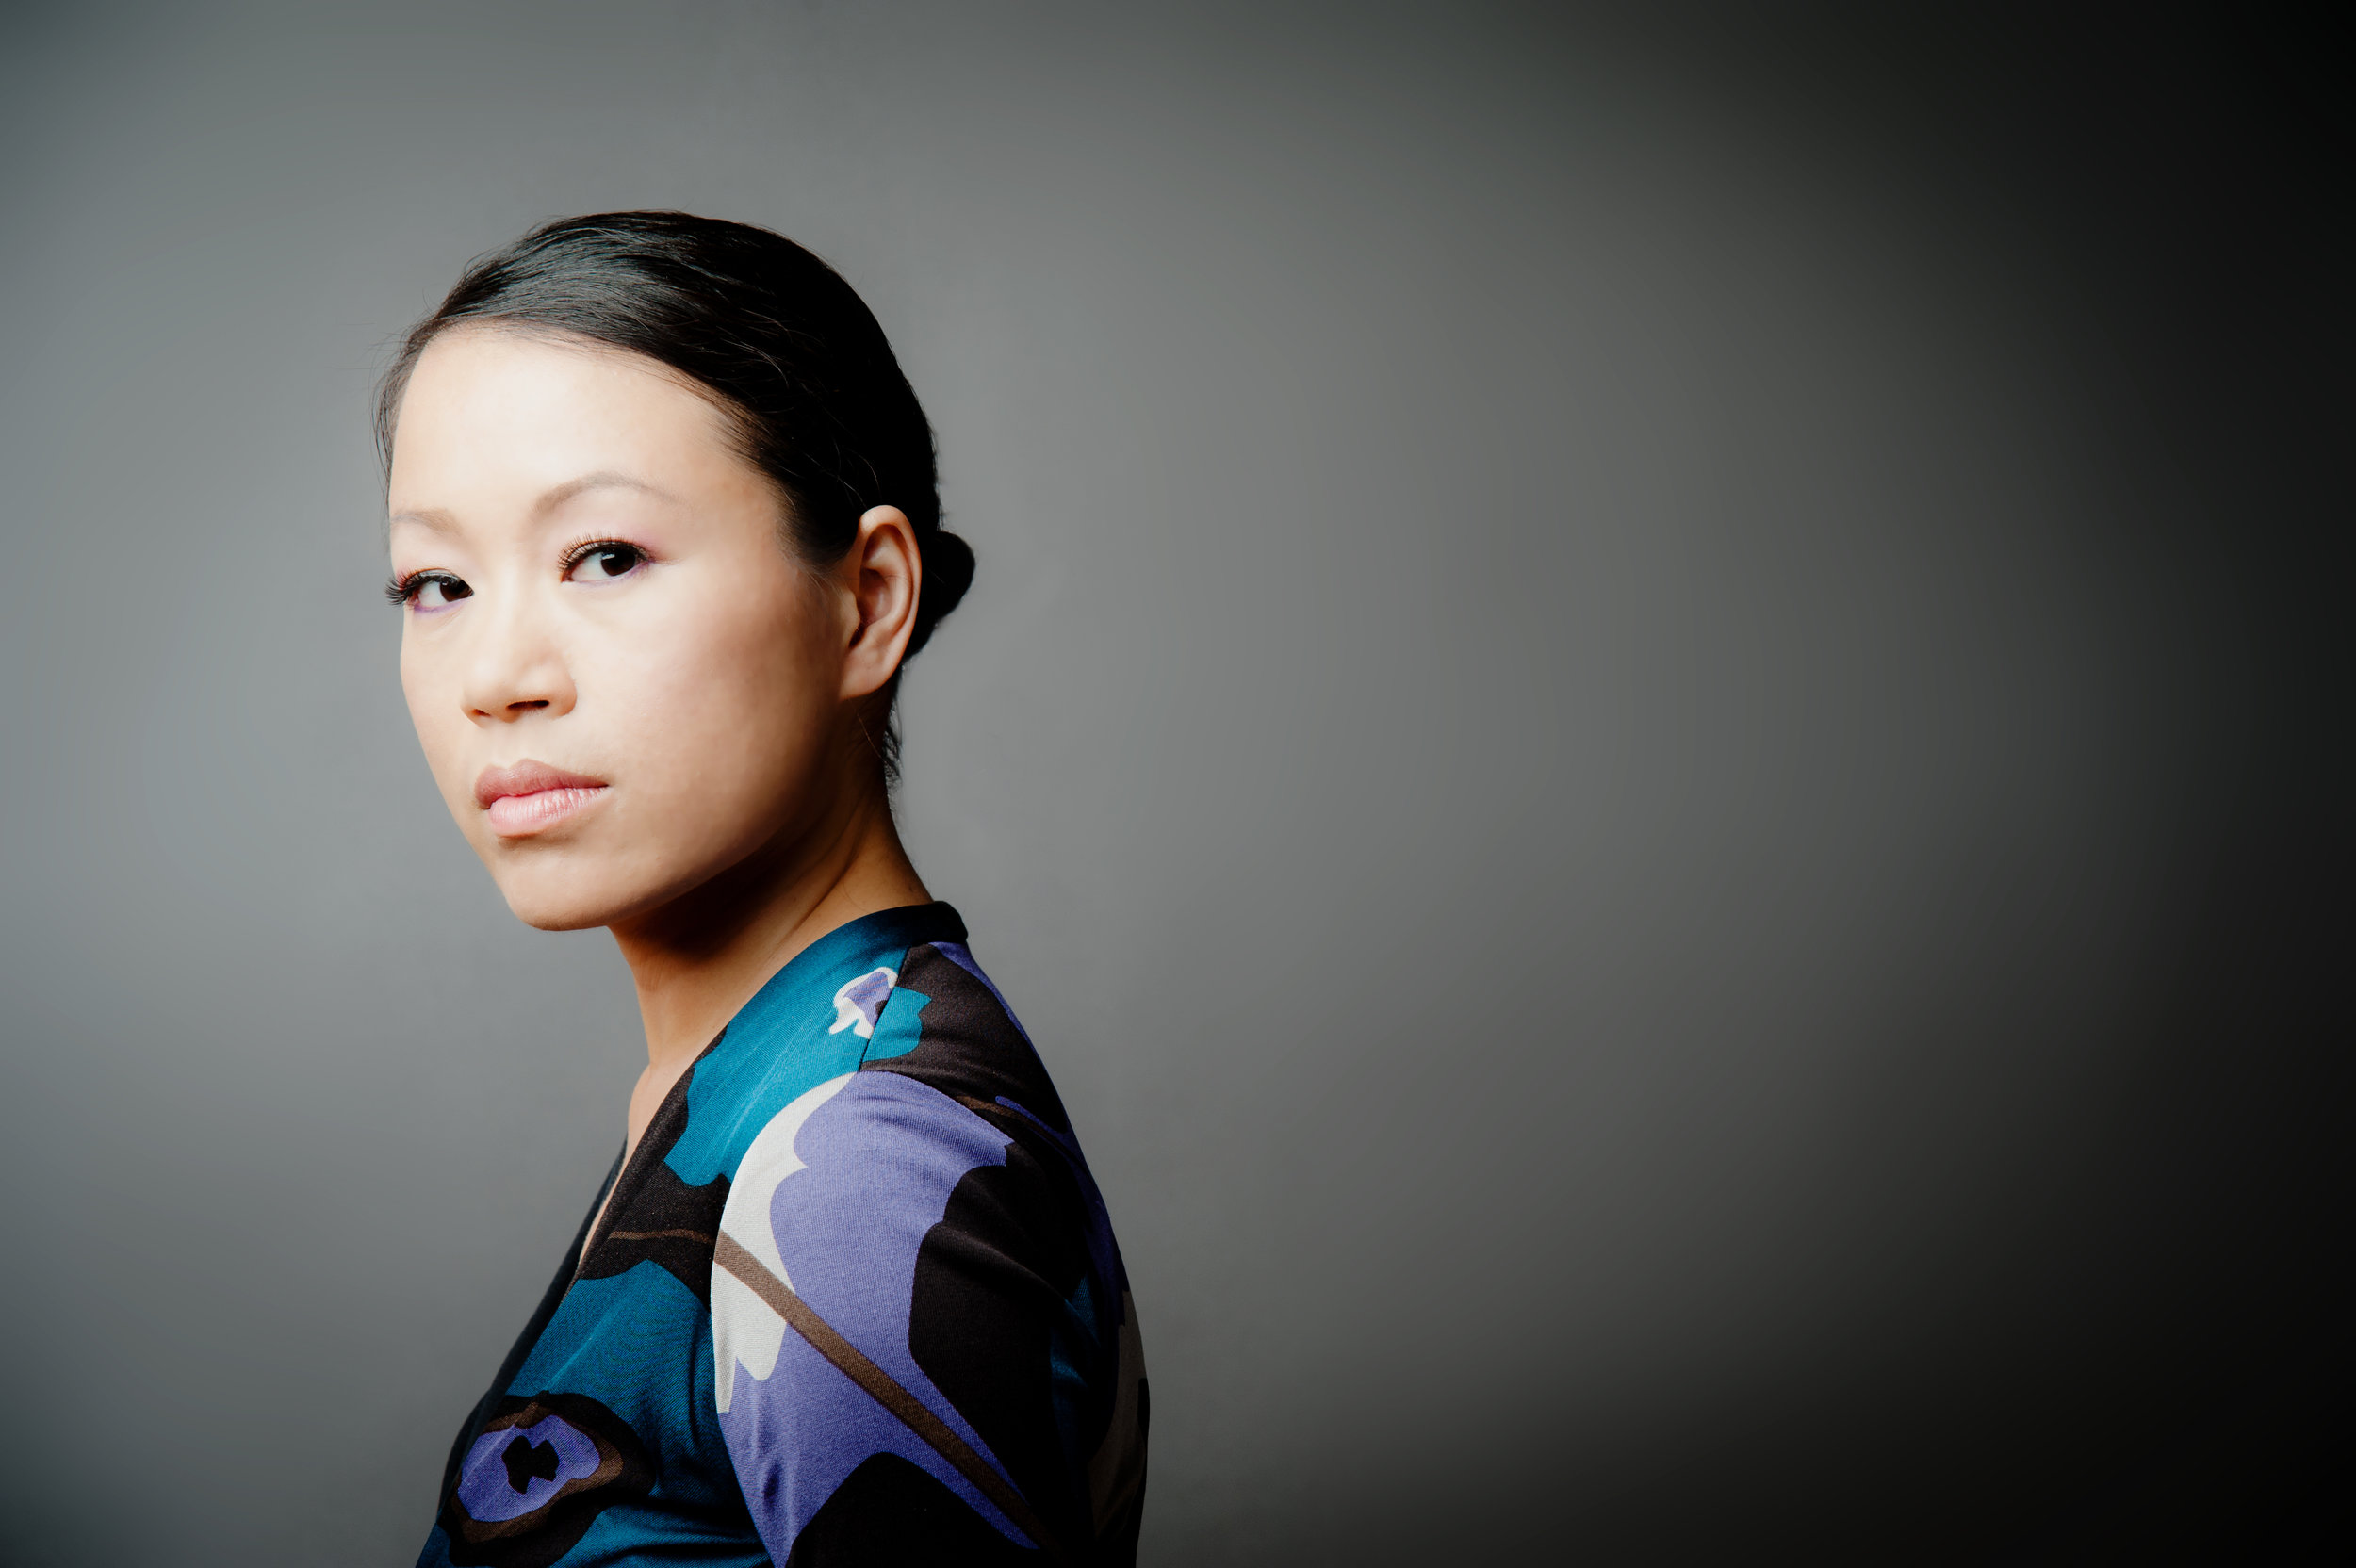 """Aiyun Huang - 2015 Host   The ever-evolving Aiyun Huang enjoys a musical life as soloist, chamber musician, researcher, teacher and producer. She was the First Prize and the Audience Award winner at the Geneva International Music Competition in 2002. Her past highlights include performances at the Victoria Hall in Geneva, Weill Recital Hall in New York, Los Angeles Philharmonic Orchestra's Green Umbrella Series, LACMA Concert Series, Holland Festival, Agora Festival in Paris, Banff Arts Festival, 7éme Biennale d'Art Contemporaine de Lyon, Vancouver New Music Festival, CBC Radio, La Jolla Summerfest, Scotia Festival, Cool Drummings, Montreal New Music Festival, Centro Nacional Di Las Artes in Mexico City, and National Concert Hall and Theater in Taipei. She is a founding member of Canadian trio Toca Loca with pianists Gregory Oh and Simon Docking. Since 2011, she has been performing with Musicians from soundSCAPE with soprano Tony Arnolds and pianist Thomas Rosenkranz. Her recent highlights include concerto appearances with the Taipei Symphony Orchestra and L'Orchestre Suisse Romande. Aiyun has commissioned and championed over 100 works in the last two decades working with composers internationally. Upcoming collaborative projects include Tacoma Narrows Monochord with Sean Griffin and a new piece by Jaroslaw Kapuscinski with the St. Lawrence String Quartet.  She is a researcher at the Centre for Interdisciplinary Research in Music Media and Technology in Montreal. In 2012, Mode Records released Save Percussion Theater featuring Aiyun Huang and friends documenting important theatrical works in the percussion repertoire. Aiyun's current research focuses on the cross-pollination between science and music from the performer's perspective. Her ongoing project """"Memory in Motion"""" focuses on the understanding of memory in percussion ensemble playing. In May 2013 she co-hosted Random Walks: Music of Xenakis and Beyond with Canada's leading research institutions: Perimeter Ins"""